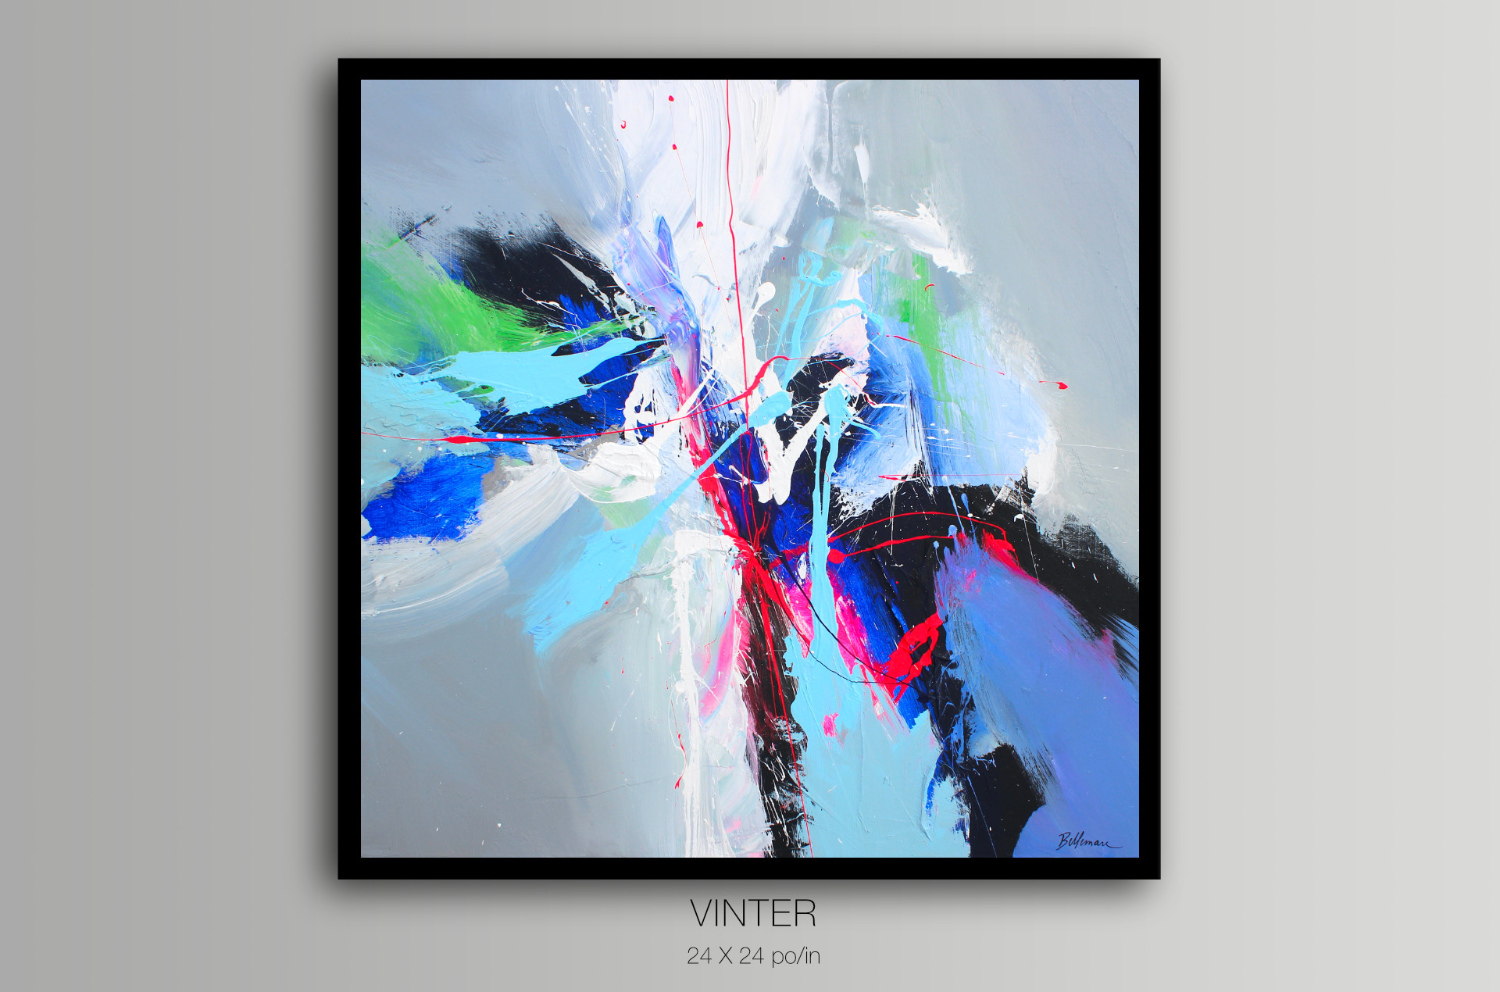 Vinter - Featured